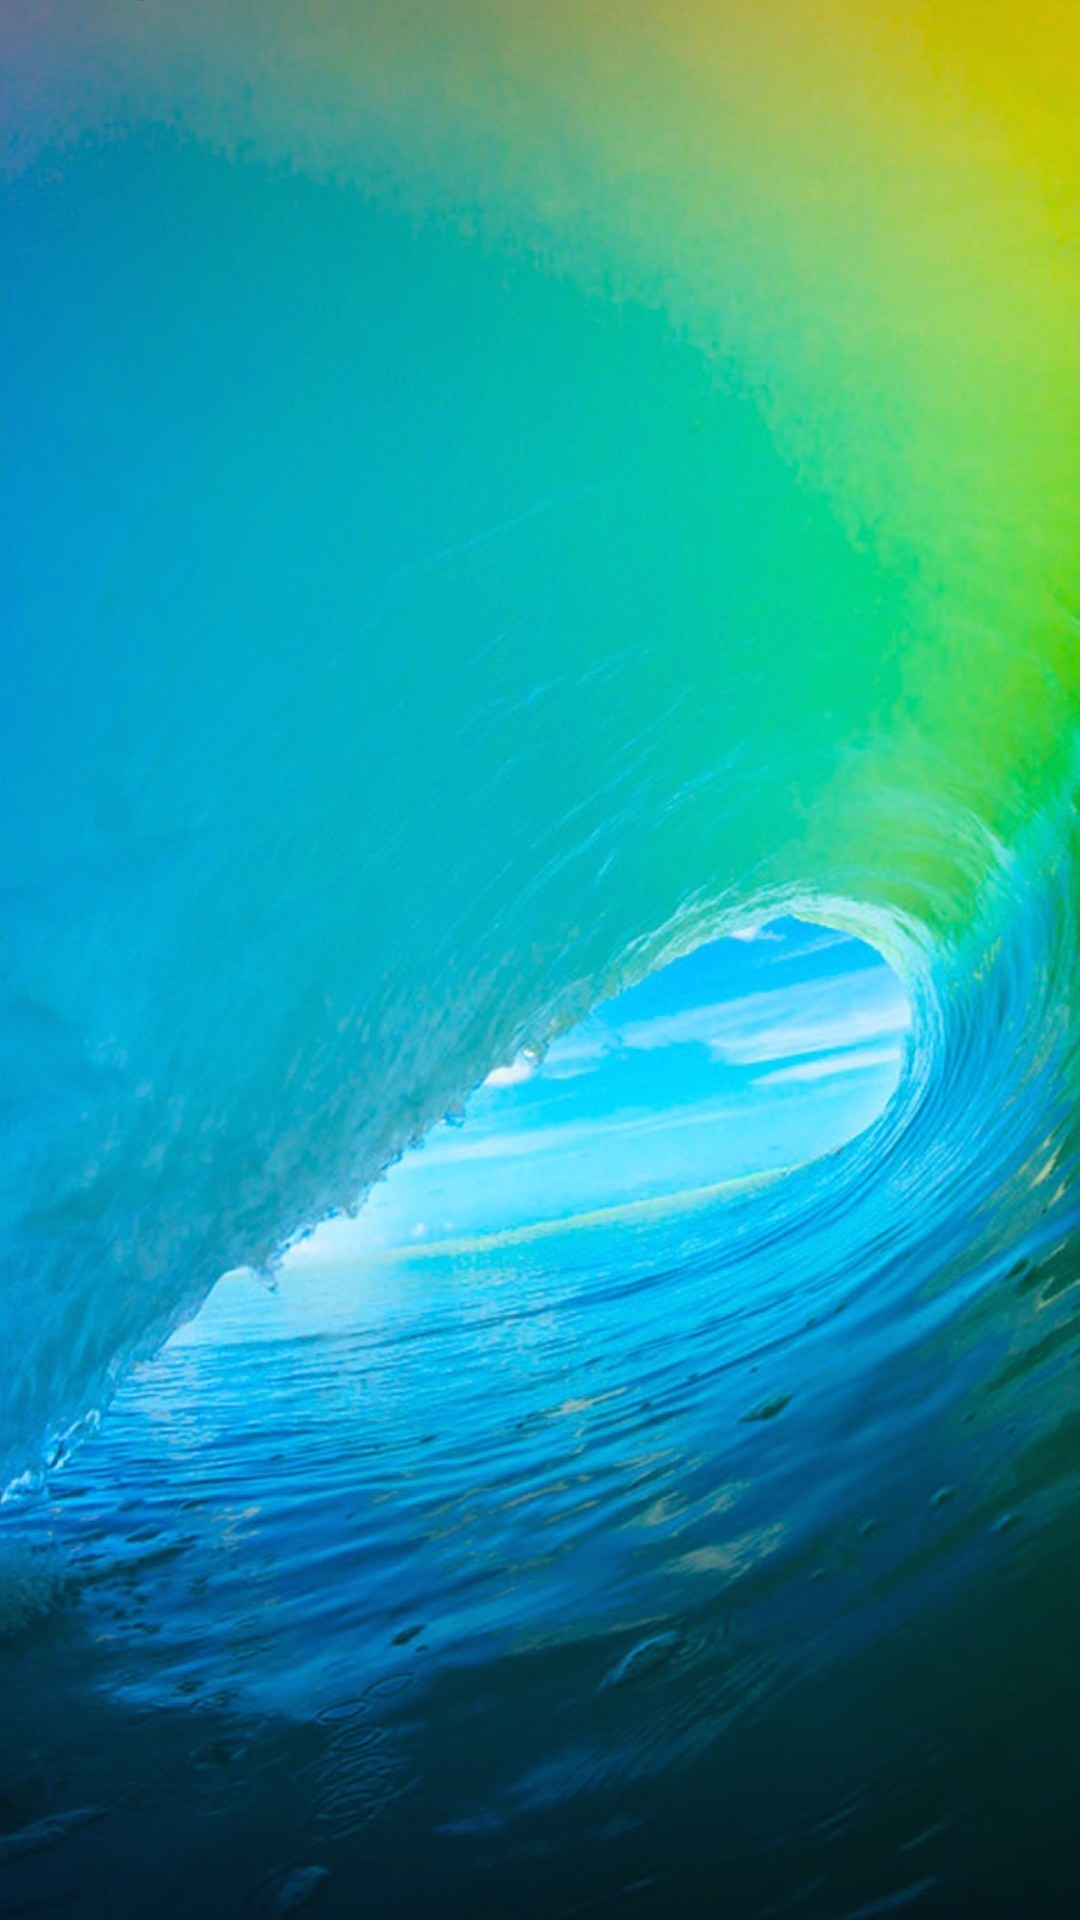 1080x1920  iOS 9 Colorful Surf Wave iPhone 6+ HD Wallpaper ·  HintergrundbilderIphone 6 TapeteHandy